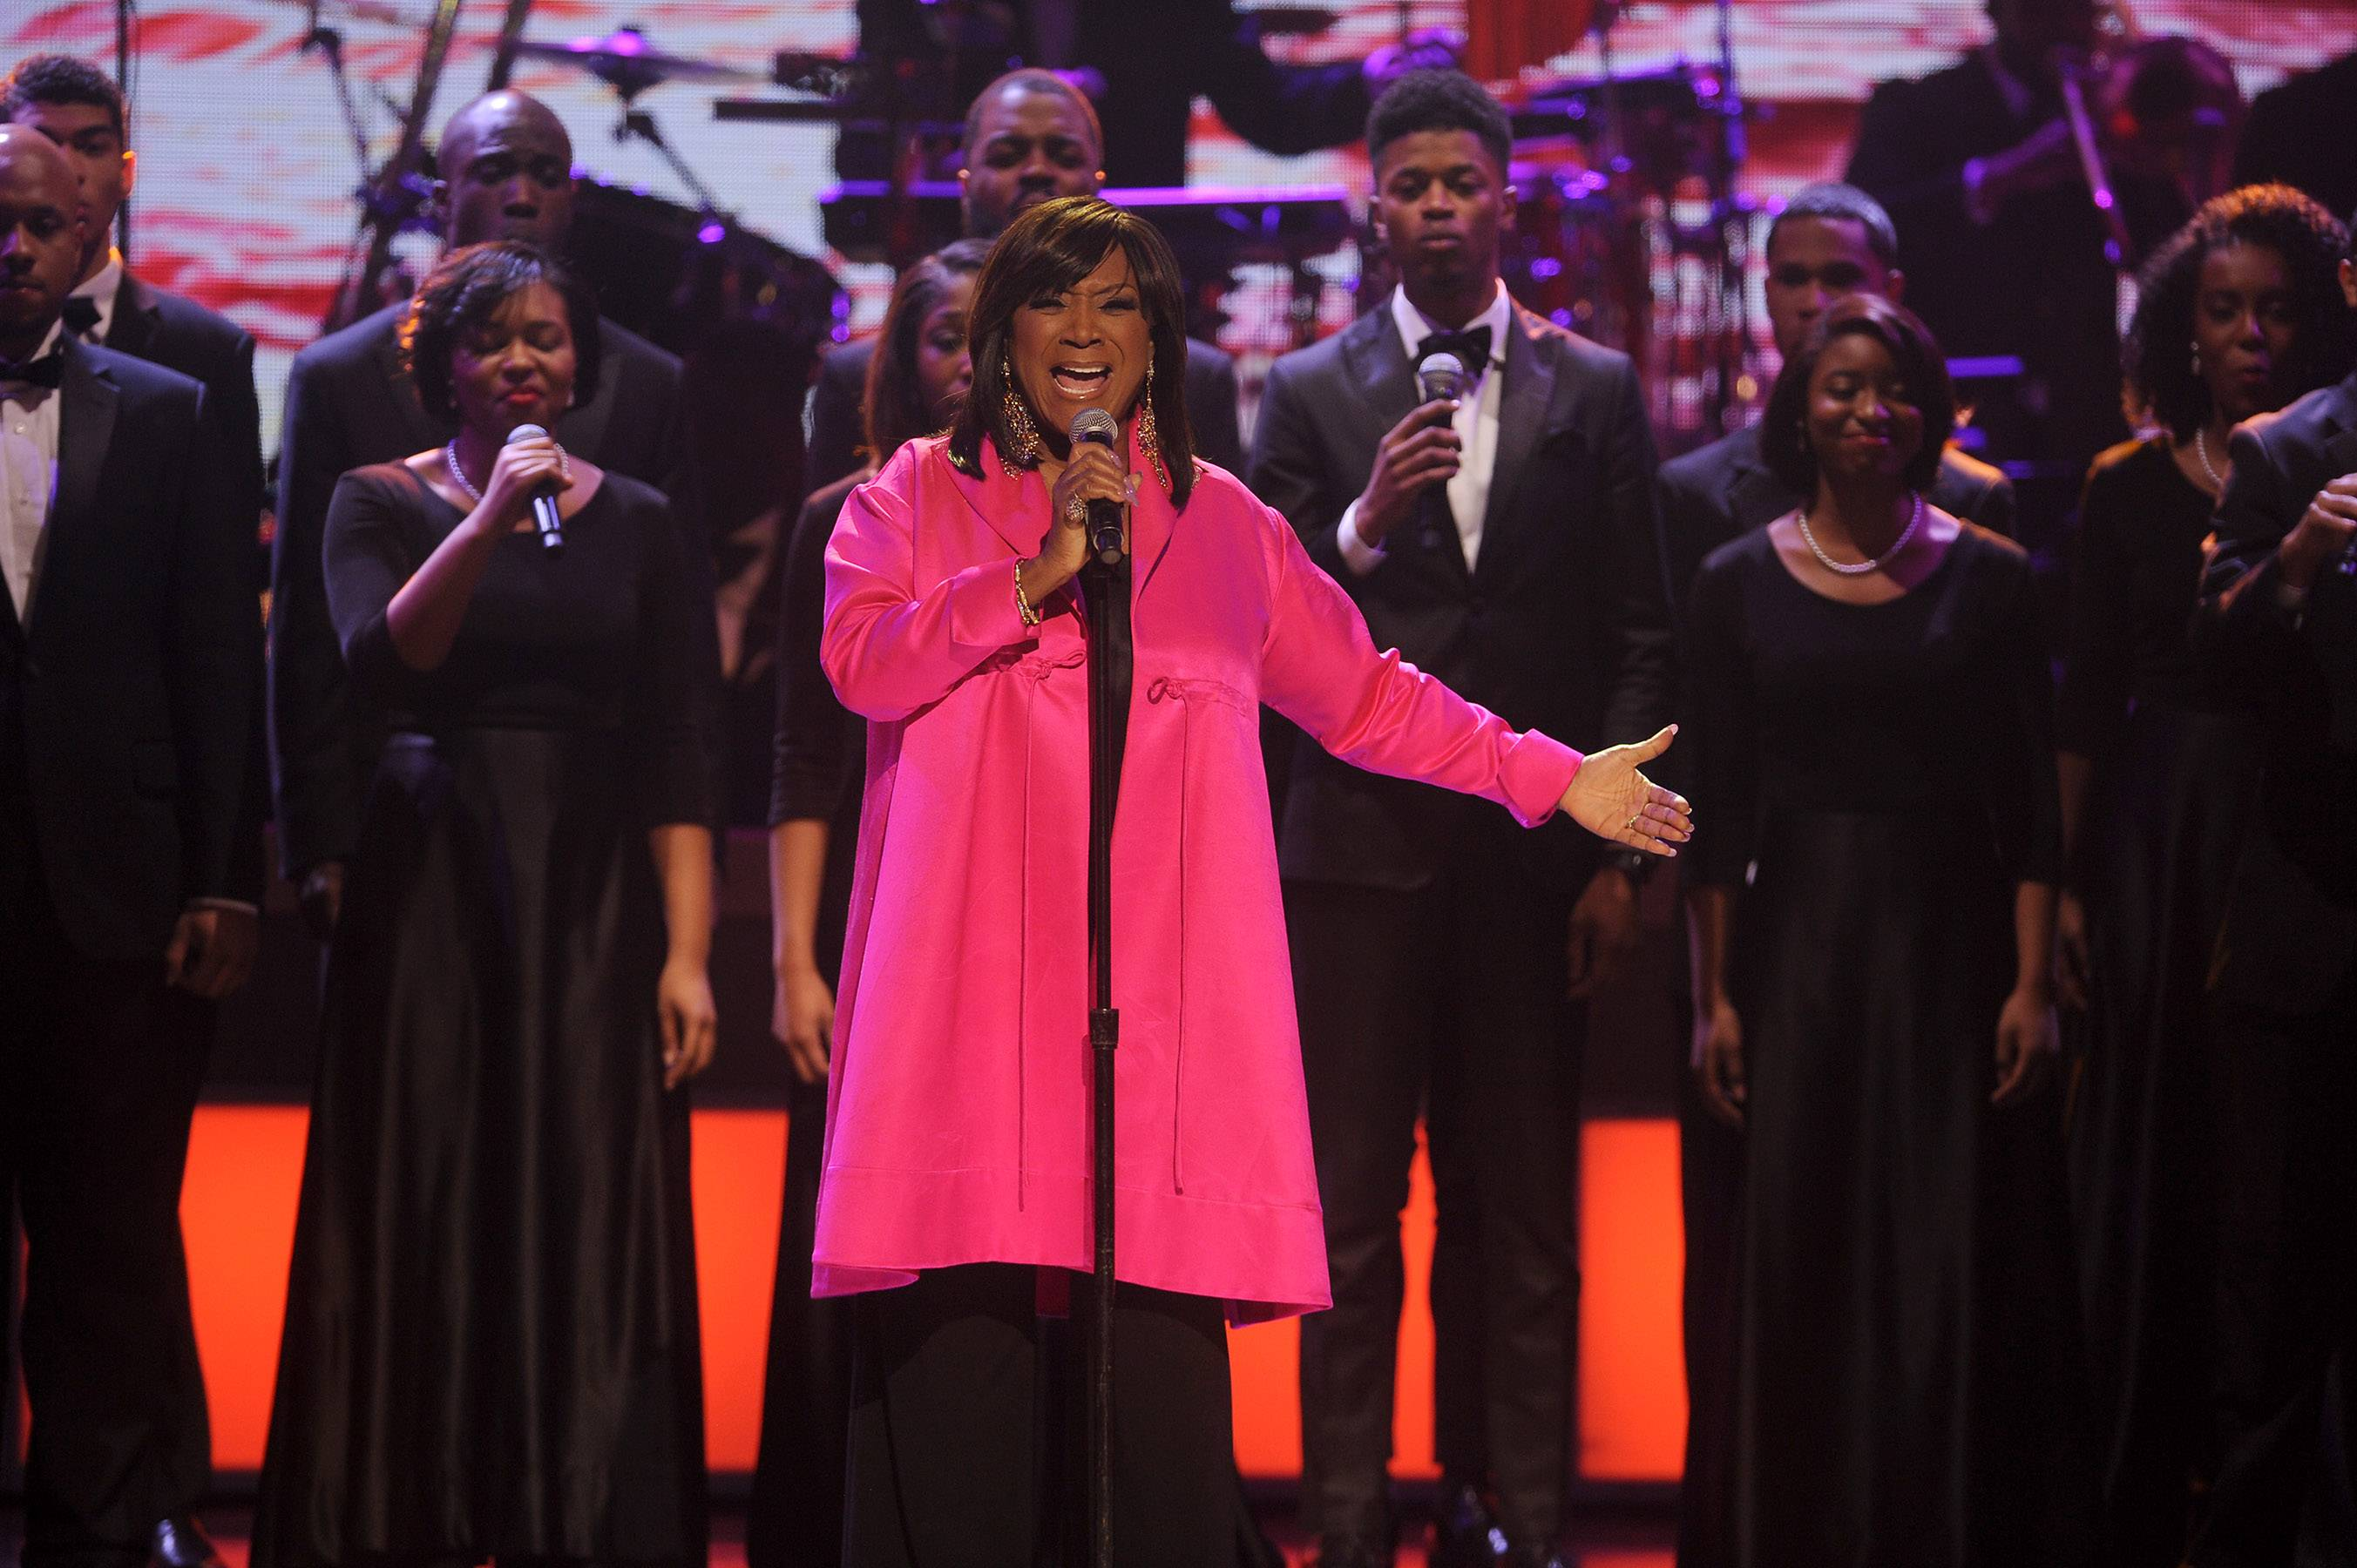 Howard and Spelman Choirs Perform With Patti LaBelle - Plus, a Norfolk State University student was left with a gash after being bitten by K-9.?Natelege Whaley (@Natelege_)  Members of the Howard University and Spelman College Choir were on stage Saturday with legendary singer Patti LaBelle to perform at the BET Honors as a part of a tribute to actress and honoree Phylicia Rashad. The BET Honors airs Feb. 23.(@Natelege_)    (Photo: Brad Barket/BET/Getty Images for BET)